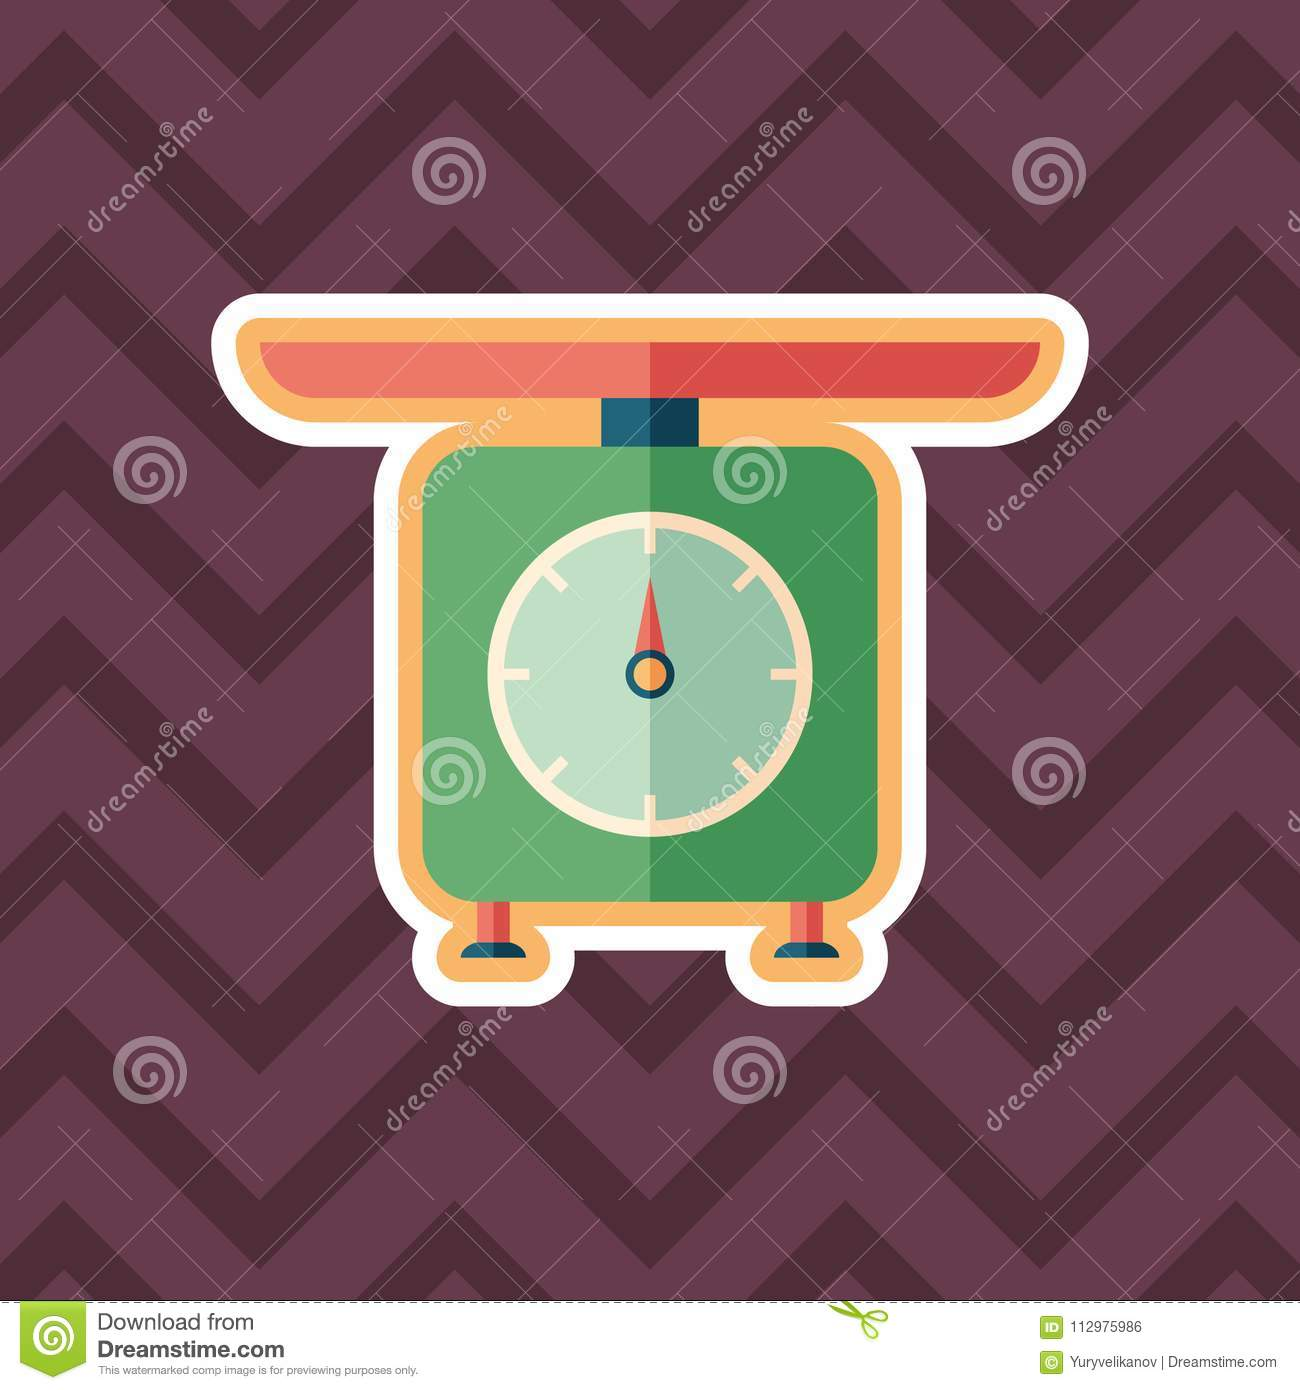 Retro scales sticker flat icon with color background.